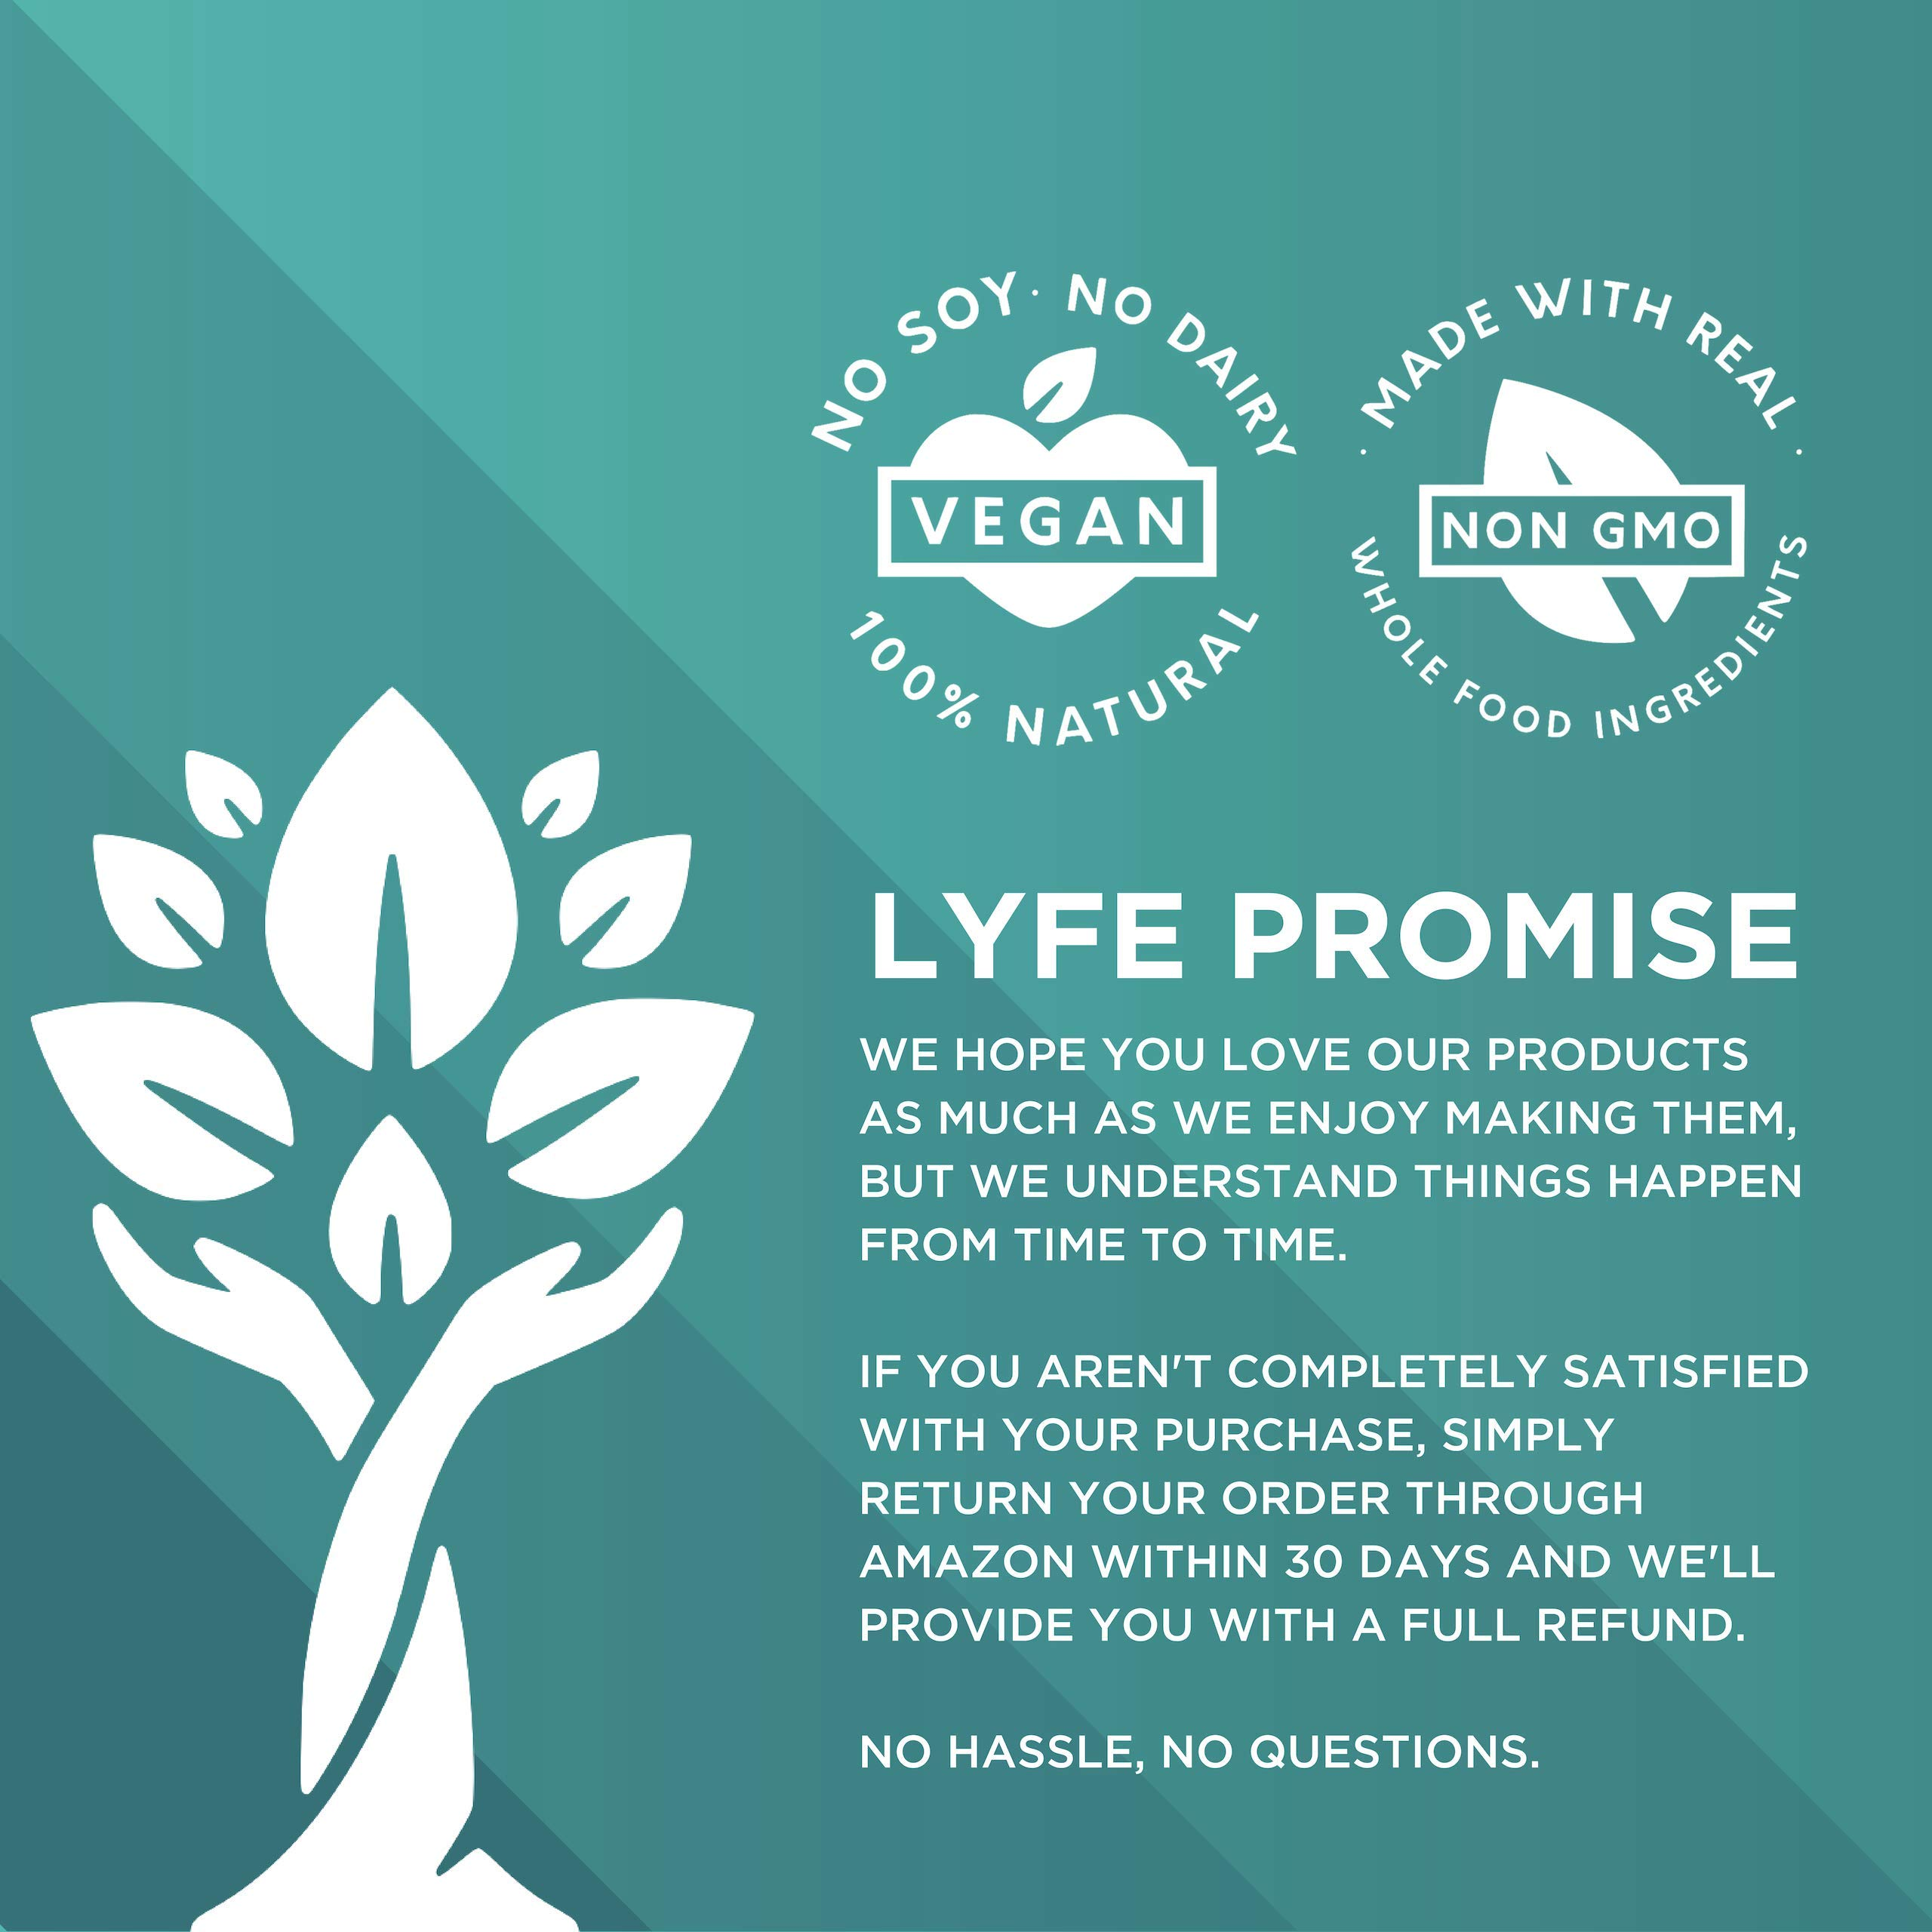 LYFE FUEL Transformation Bundle - Meal Replacement Shakes for Optimal Nutrition - Support a Whole Food Plant-Based Diet & Weight Loss - Vegan, Keto, Low Carb, Soy Free (2 Bags Chocolate, 28 Meals)